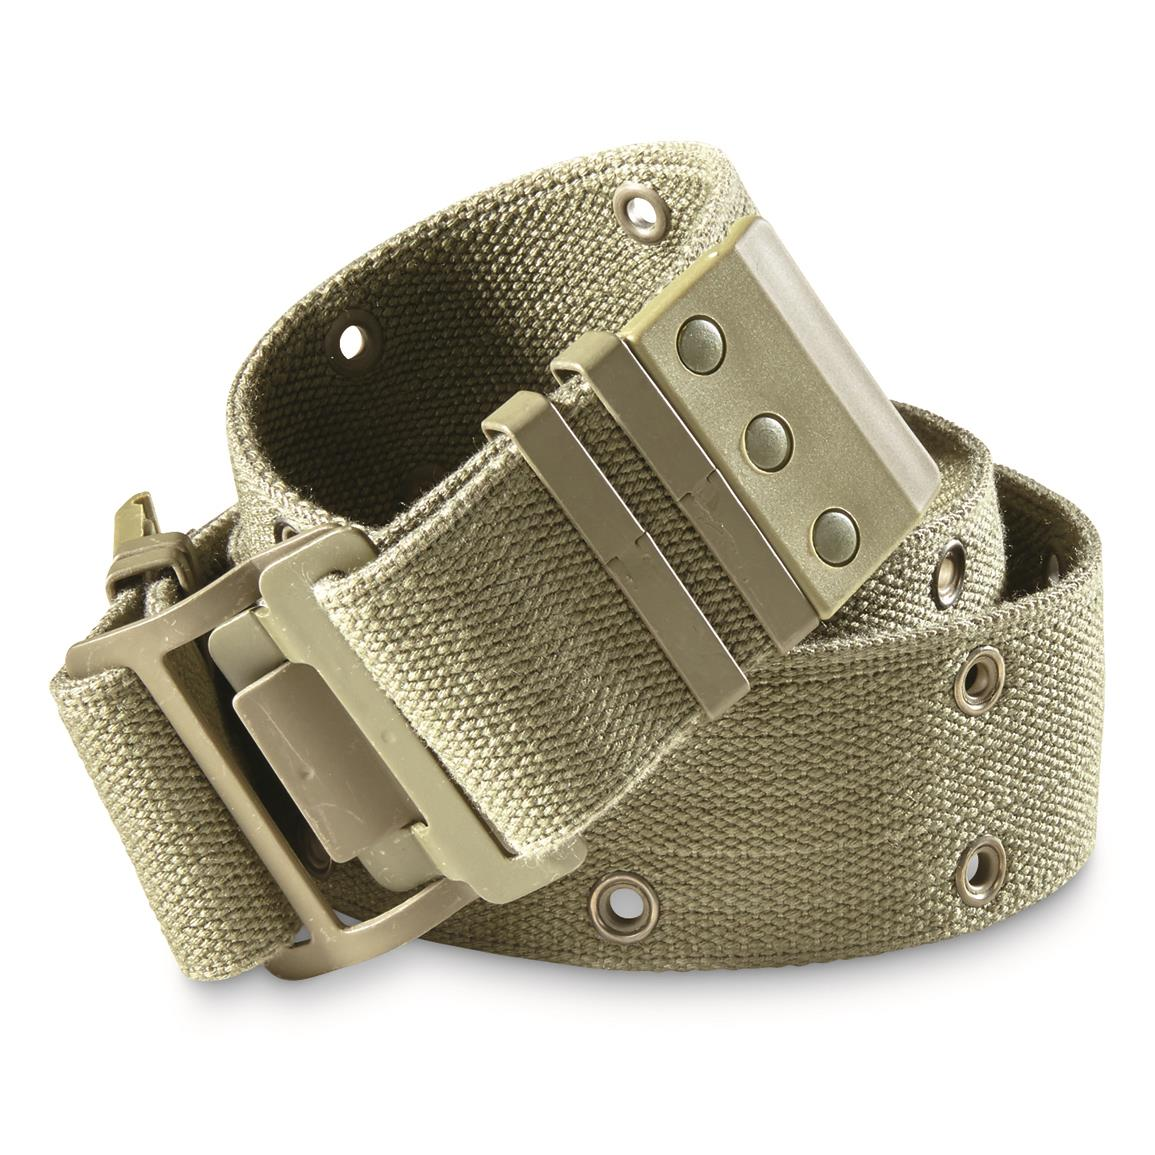 French Military Surplus FAMAS Pistol Belts, 2 Pack, New